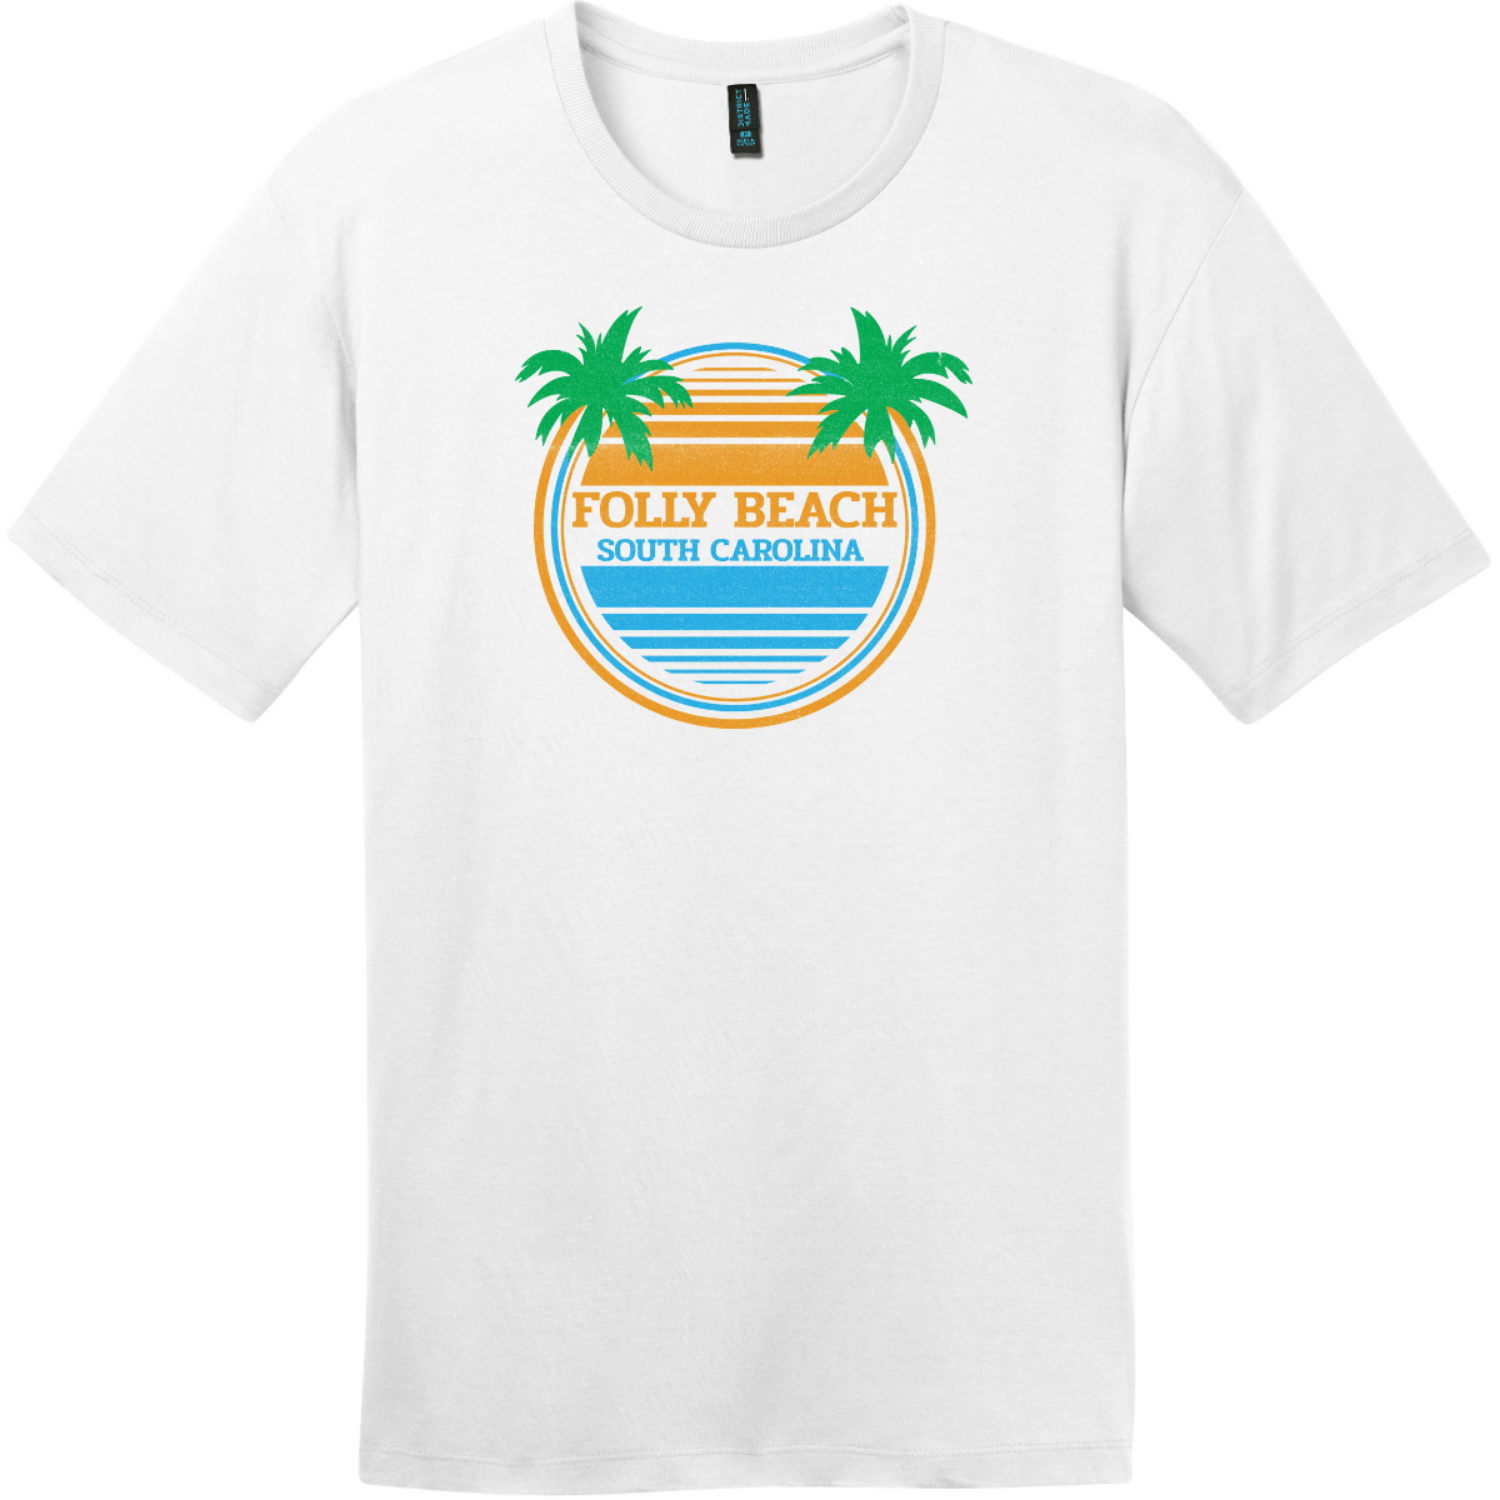 Folly Beach South Carolina Palm Trees T-Shirt Bright White District Perfect Weight Tee DT104